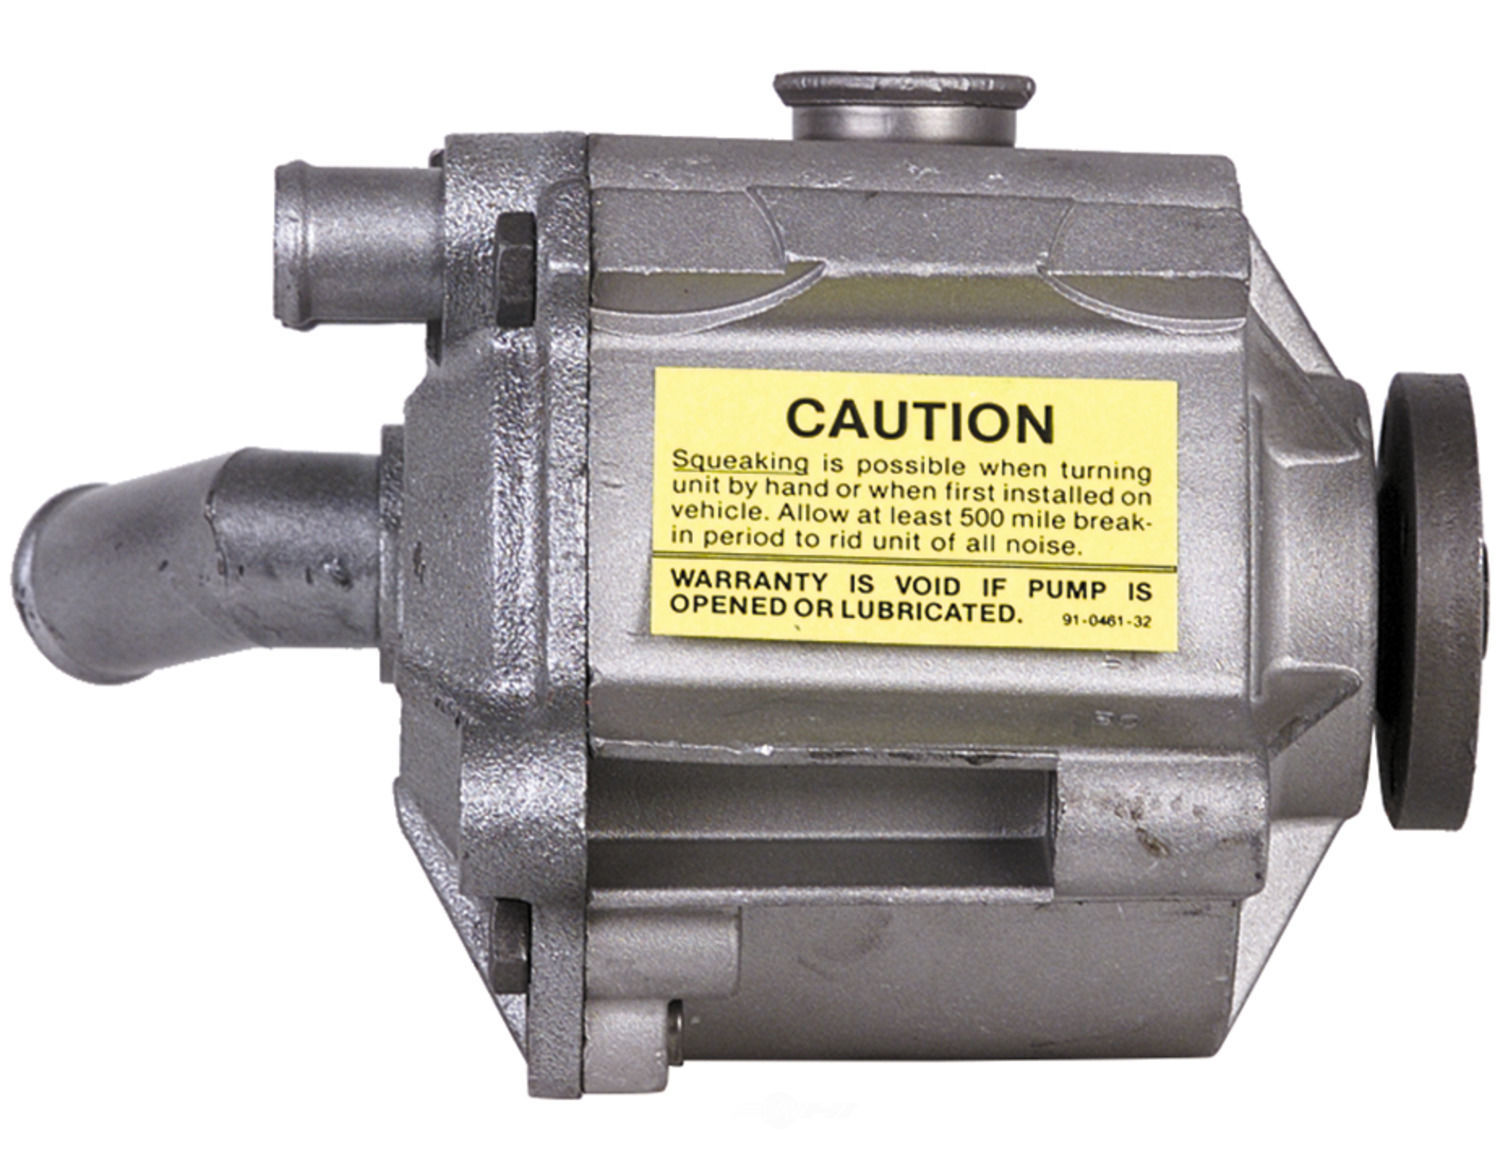 Smart Car Secondary Air Injection Pump Cost